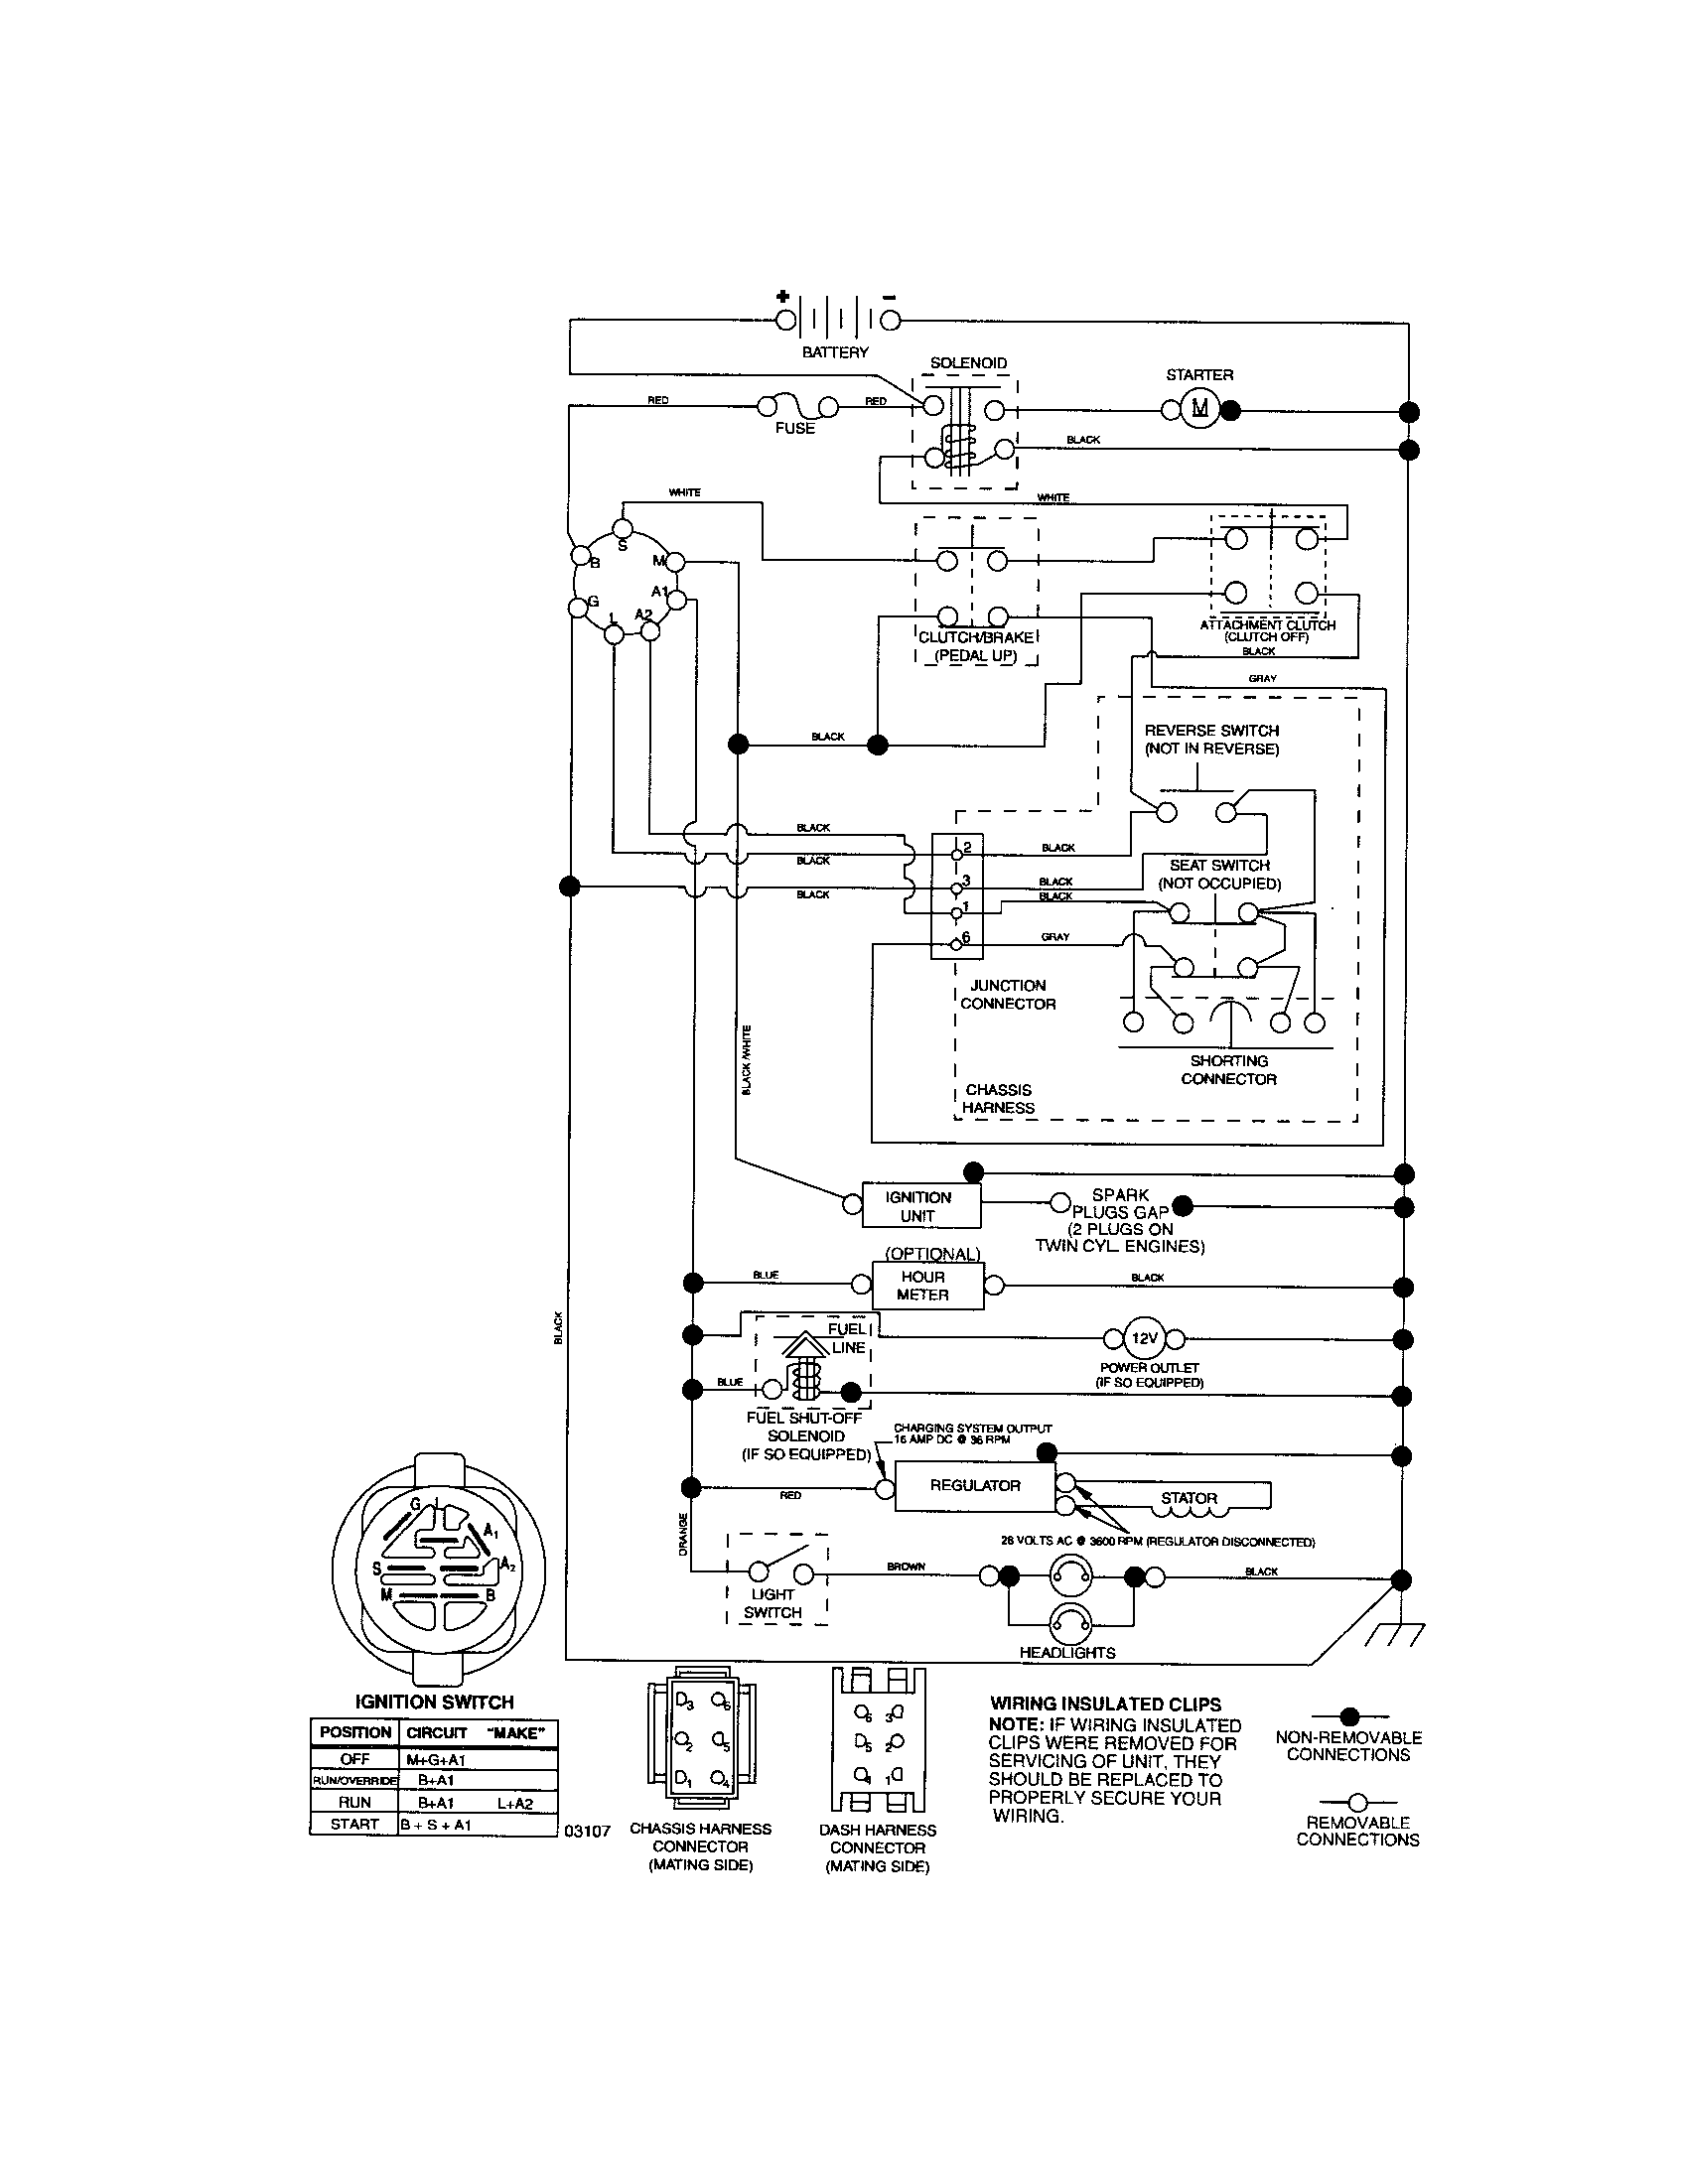 craftsman riding mower electrical diagram wiring diagram craftsman craftsman riding mower electrical diagram wiring diagram craftsman [ 1696 x 2200 Pixel ]